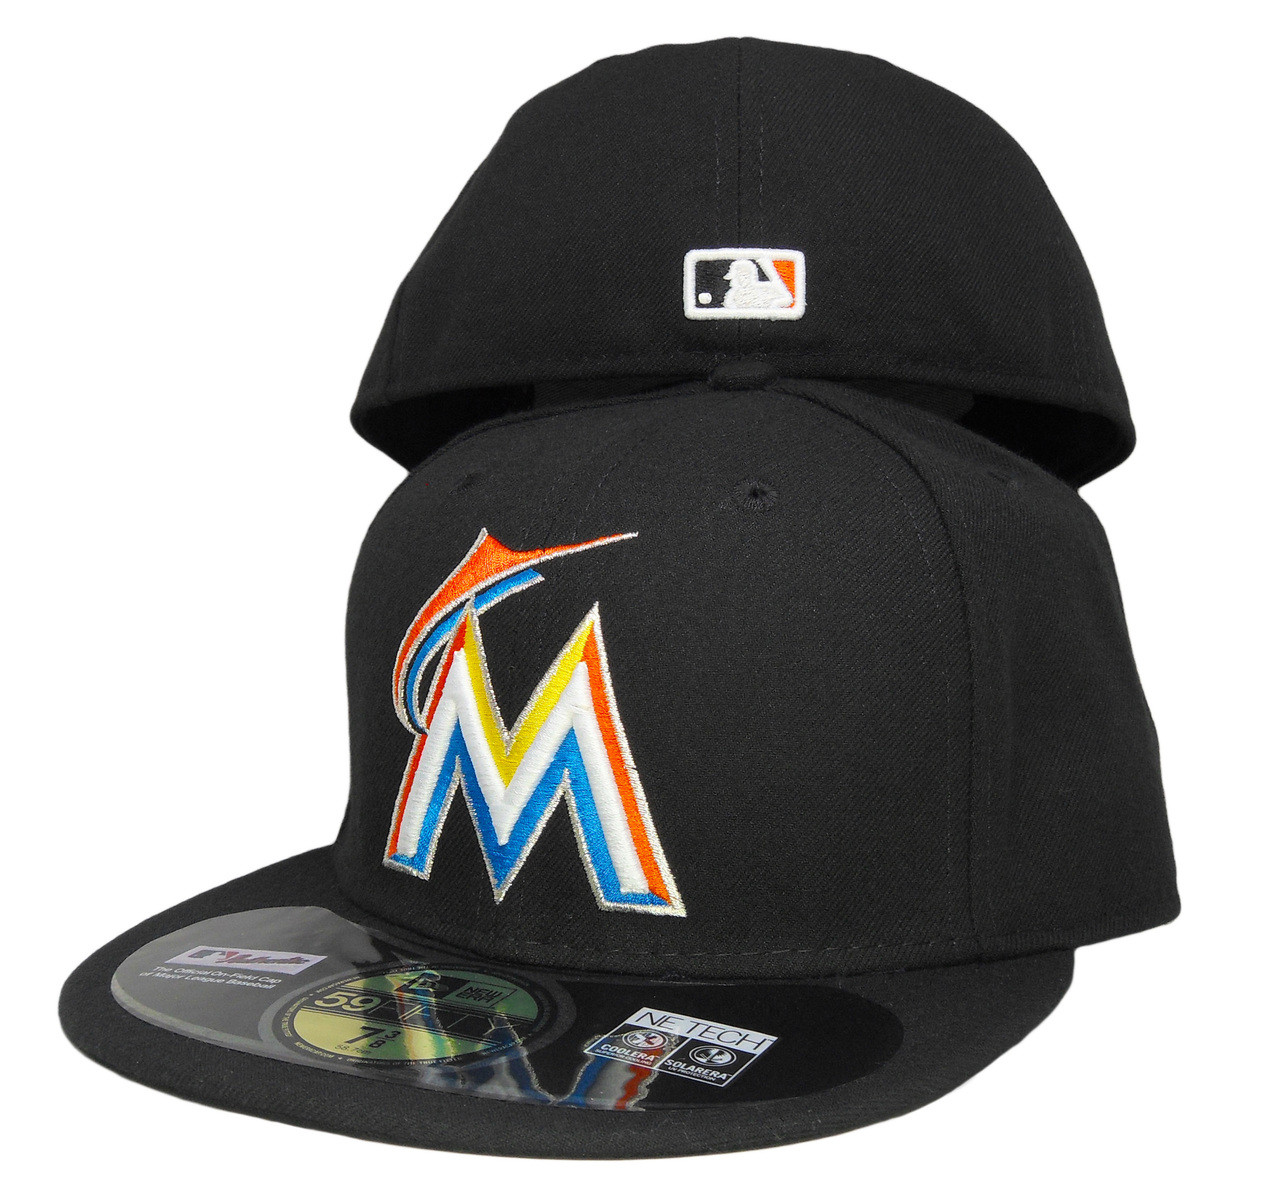 e7272f83 Miami Marlins New Era Home Onfield Fitted Hat - Black, Orange, Blue, Yellow  - ECapsUnlimited.com